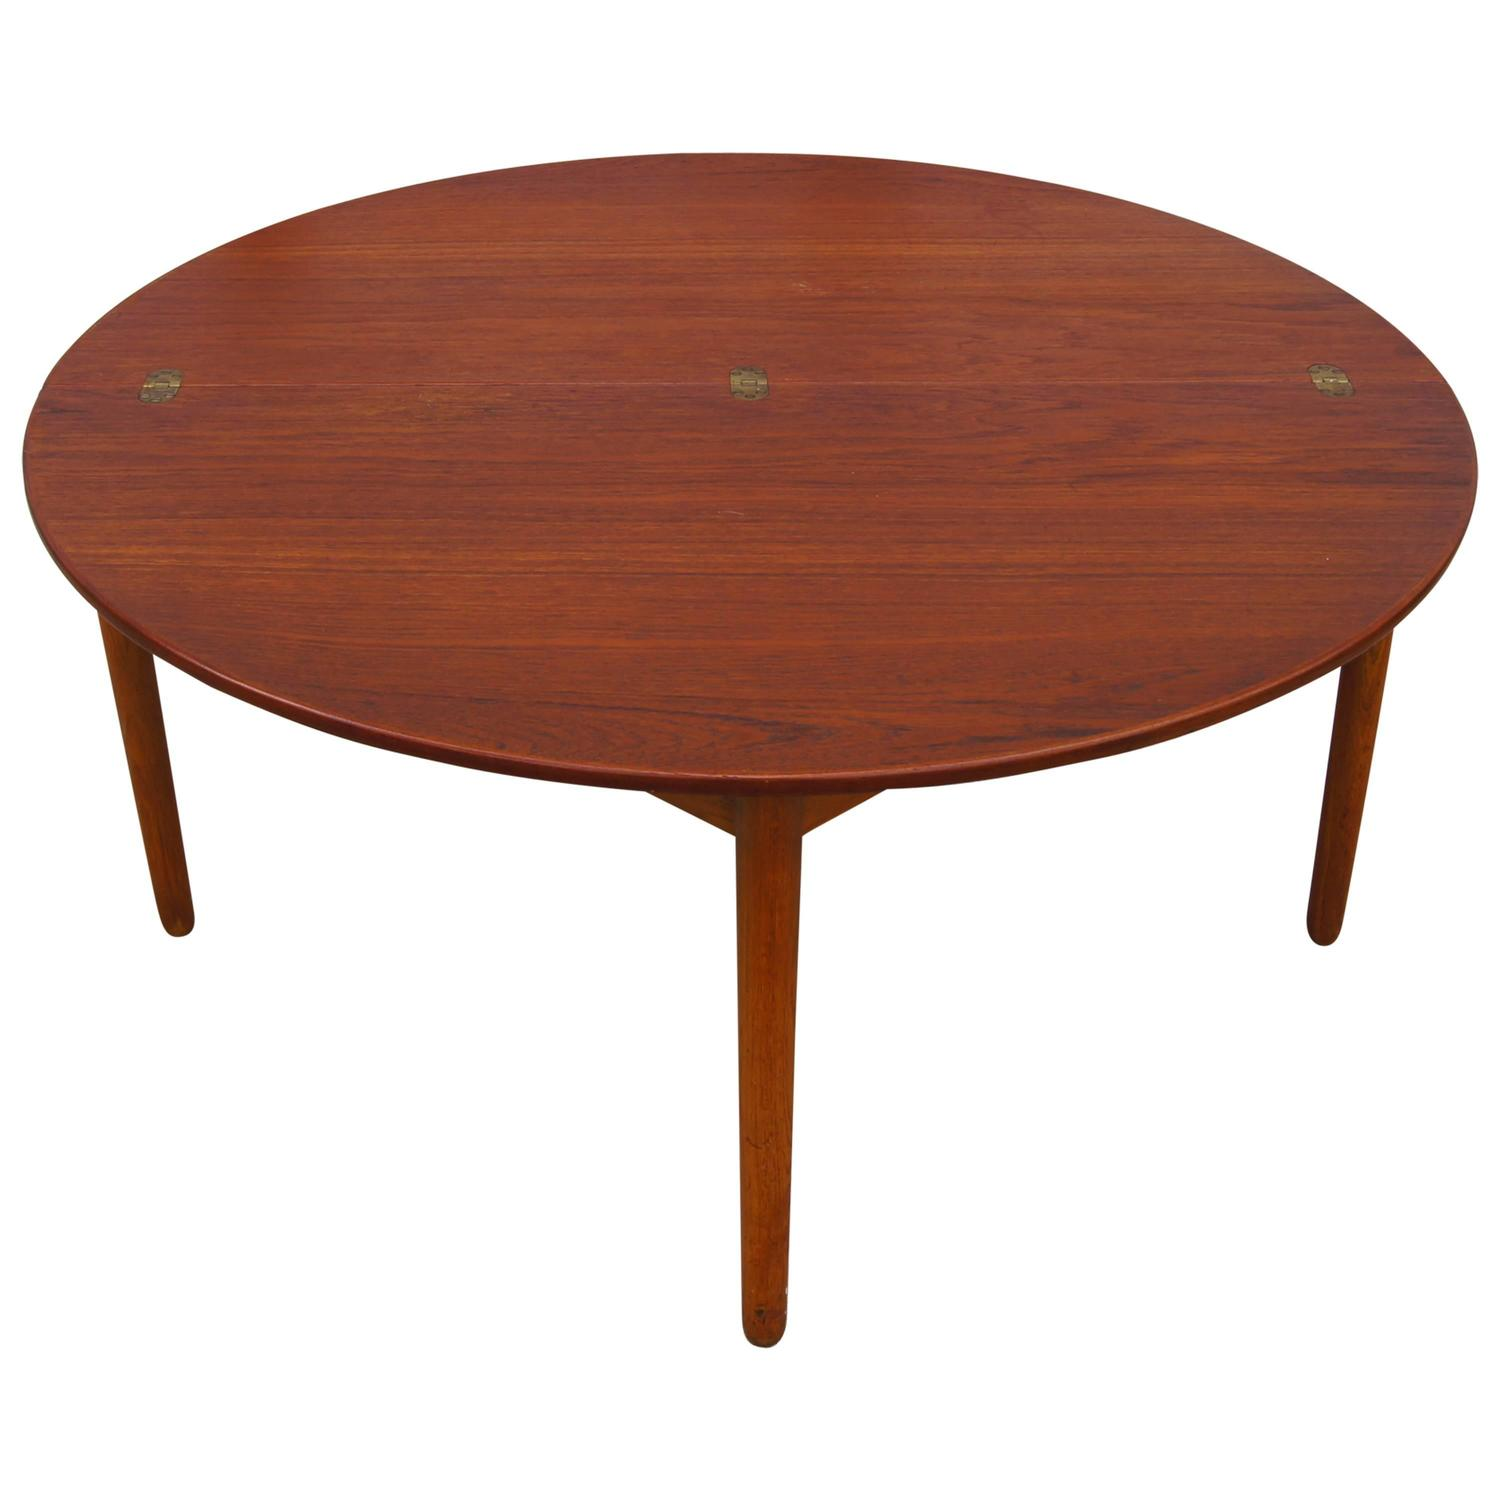 Teak Folding Coffee Table By Poul Volther For Frem Rojle For Sale At 1stdibs